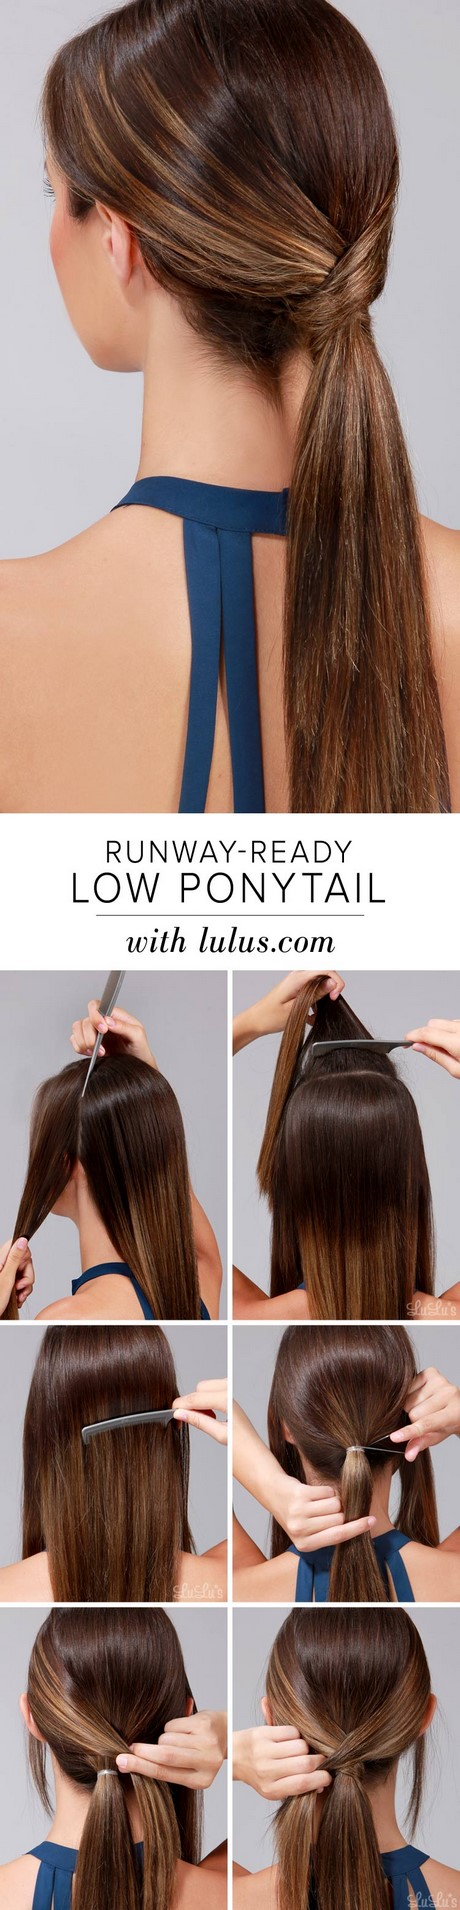 Easy Quick Hairstyles And Crazy